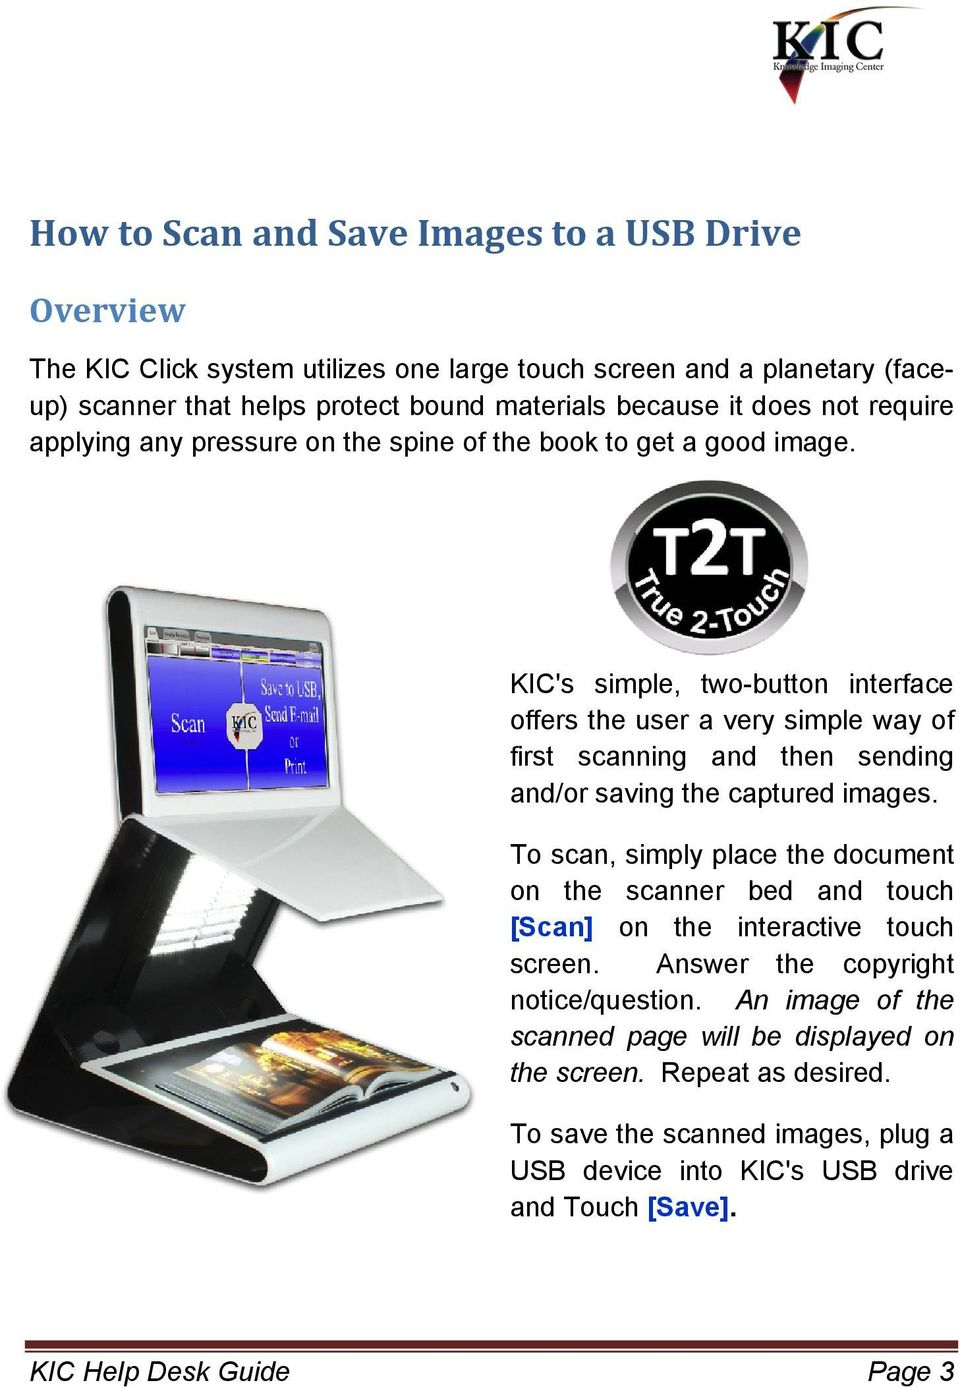 KIC's simple, two-button interface offers the user a very simple way of first scanning and then sending and/or saving the captured images.